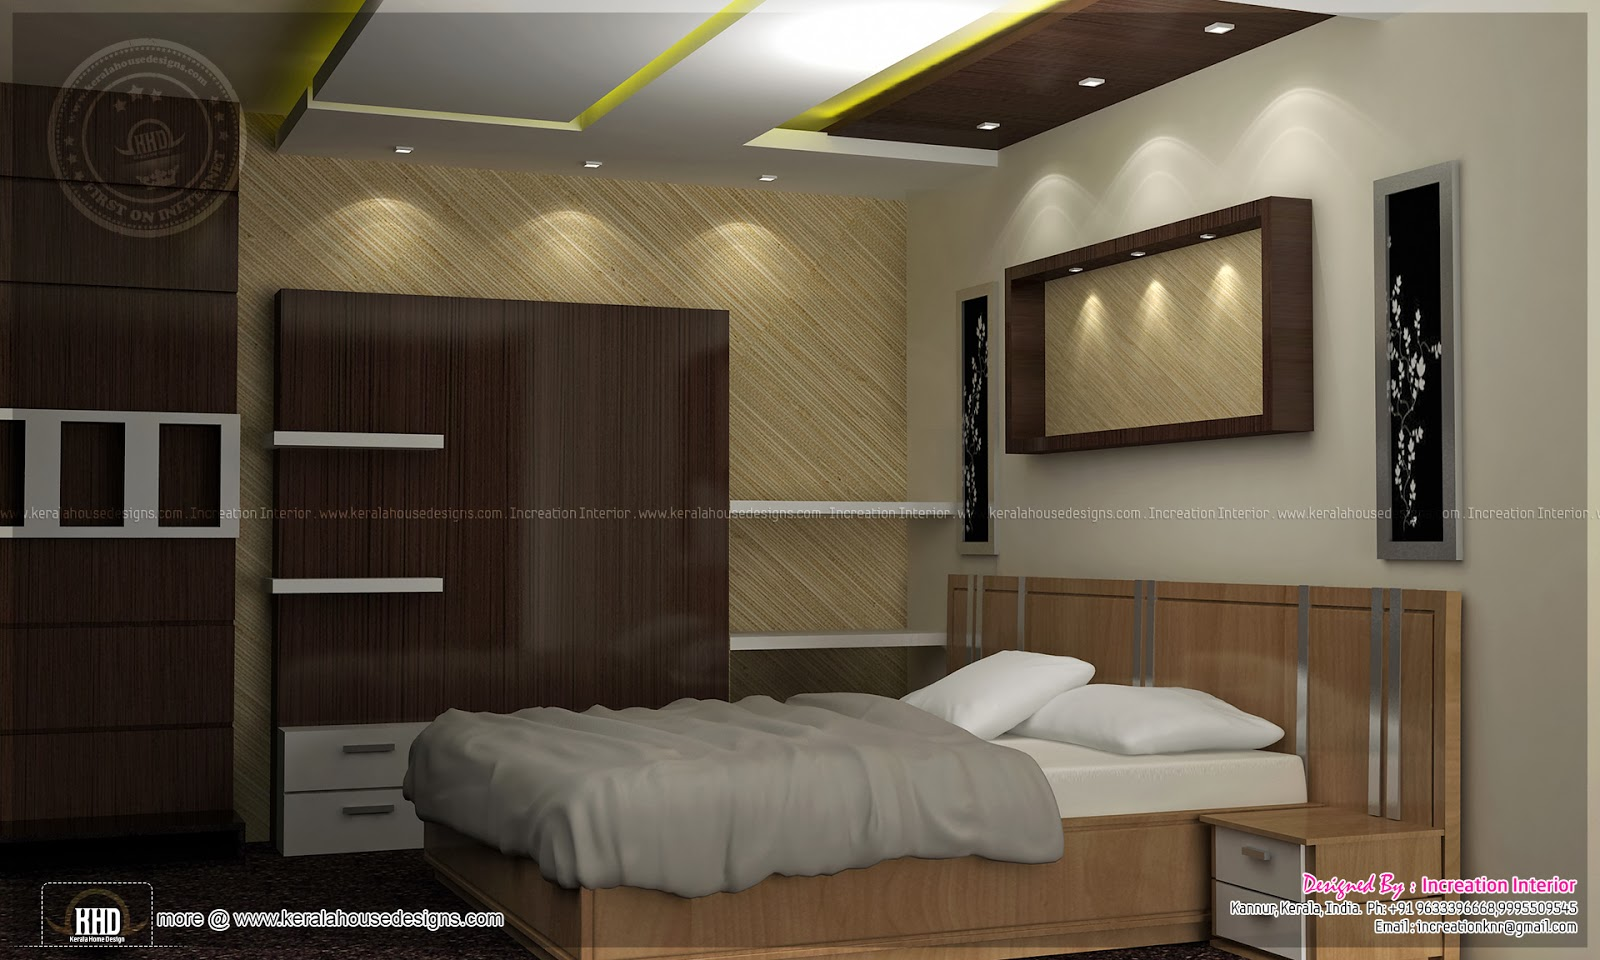 Bedroom interior designs indian house plans Design interior of house